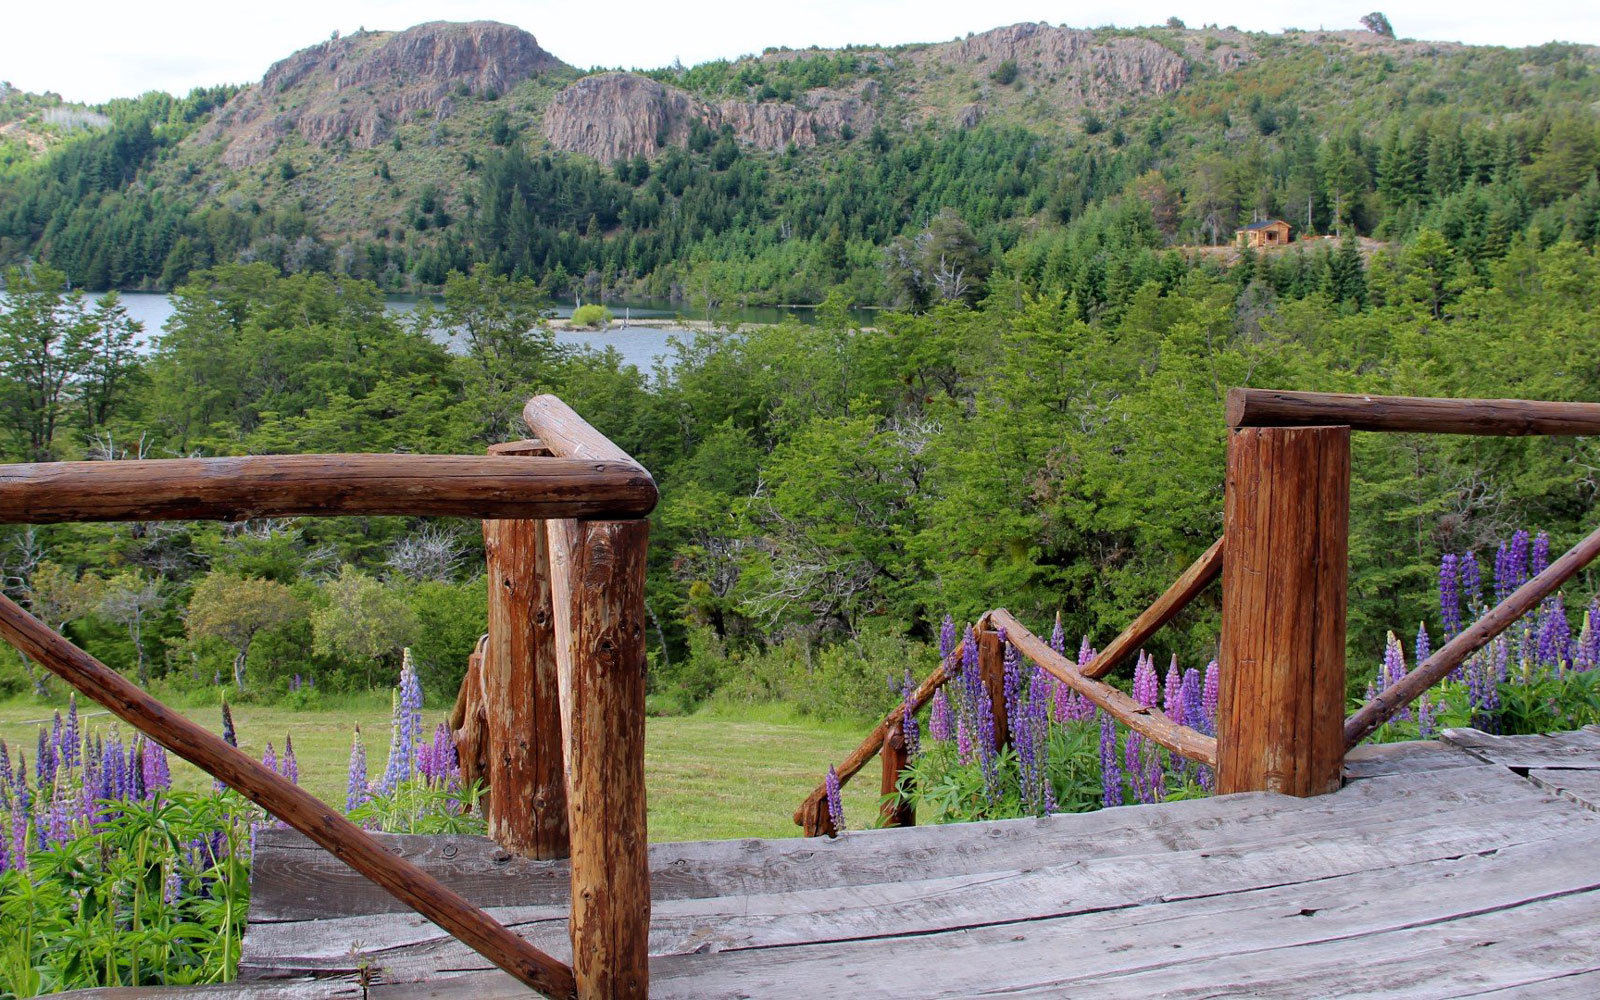 The Laguna Larga Lodge provides you access to the Los Alerces National Park just steps away.